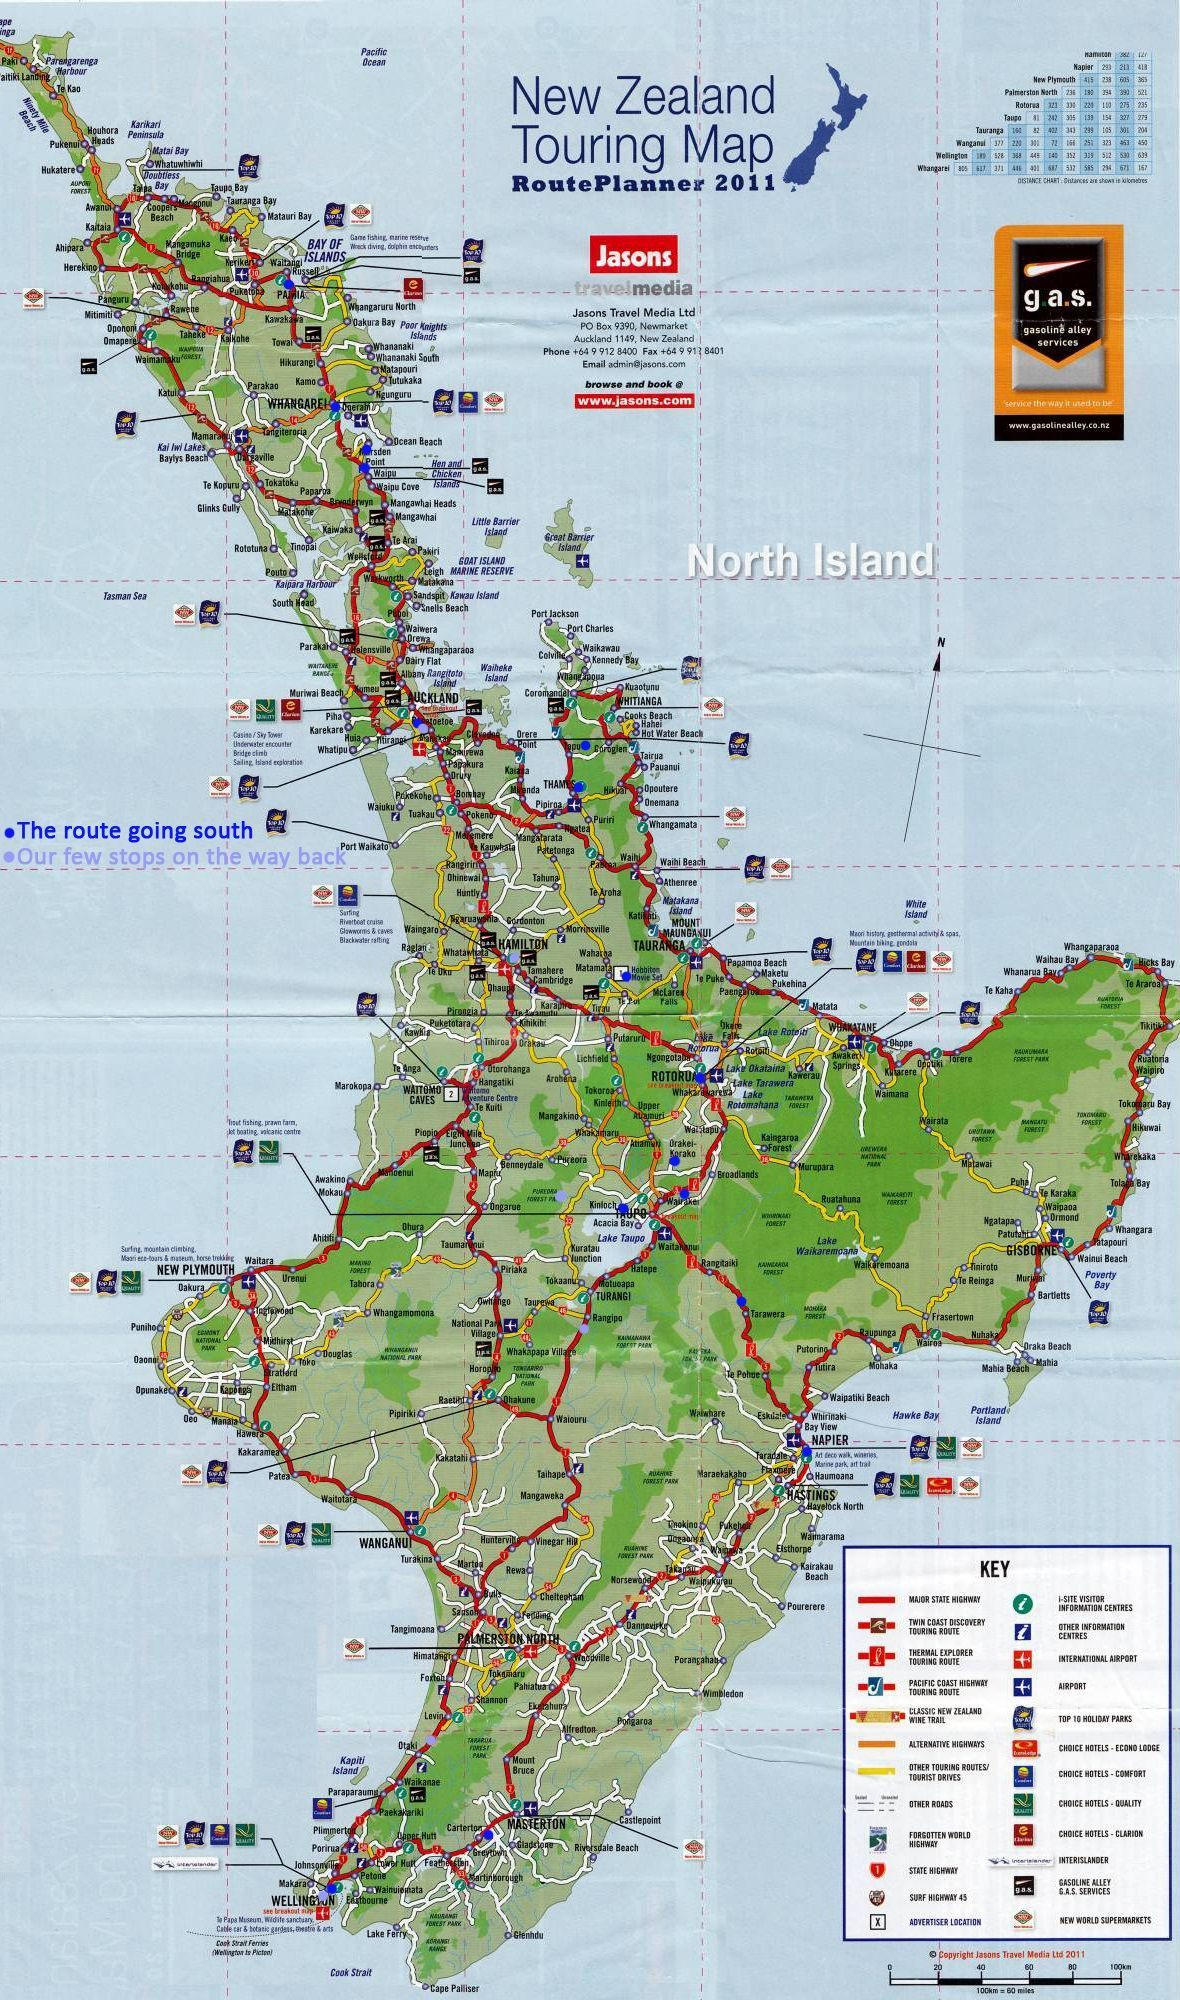 Printable Map Of South Island New Zealand.Pin By Lindsey Mclevis On Travel In 2019 Queenstown New Zealand